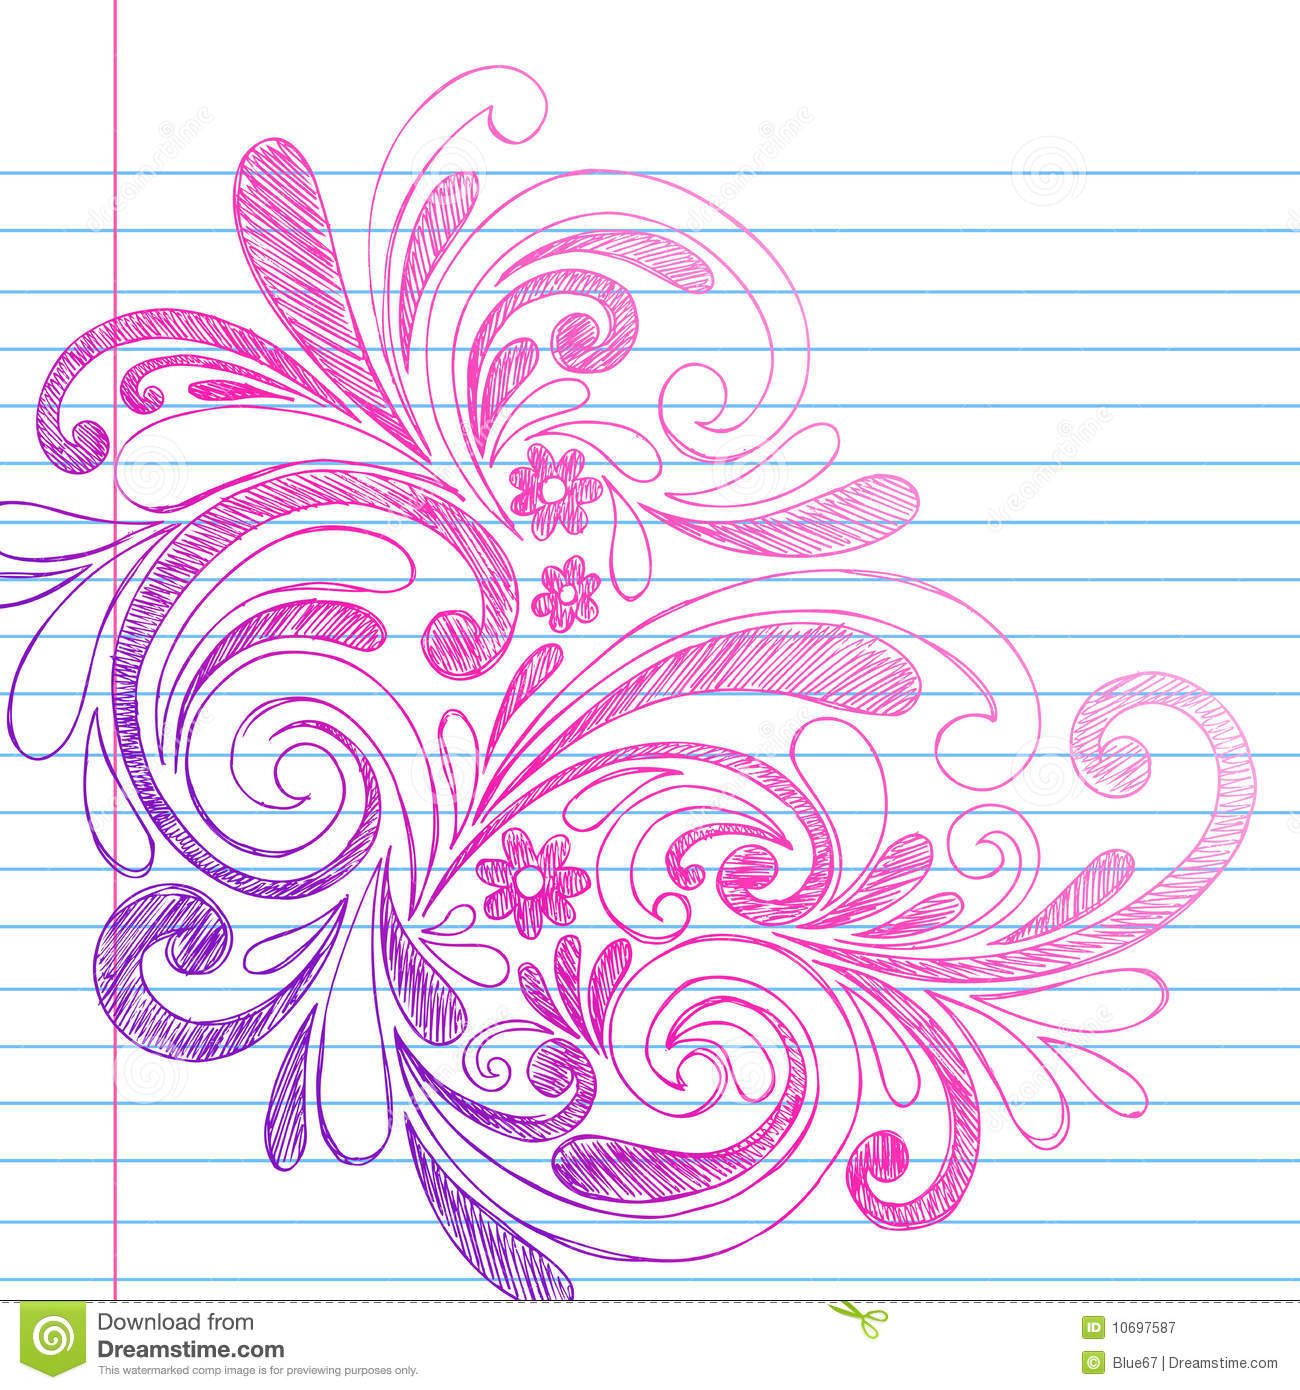 Sketchy Notebook Doodles On Lined Paper Vector Royalty